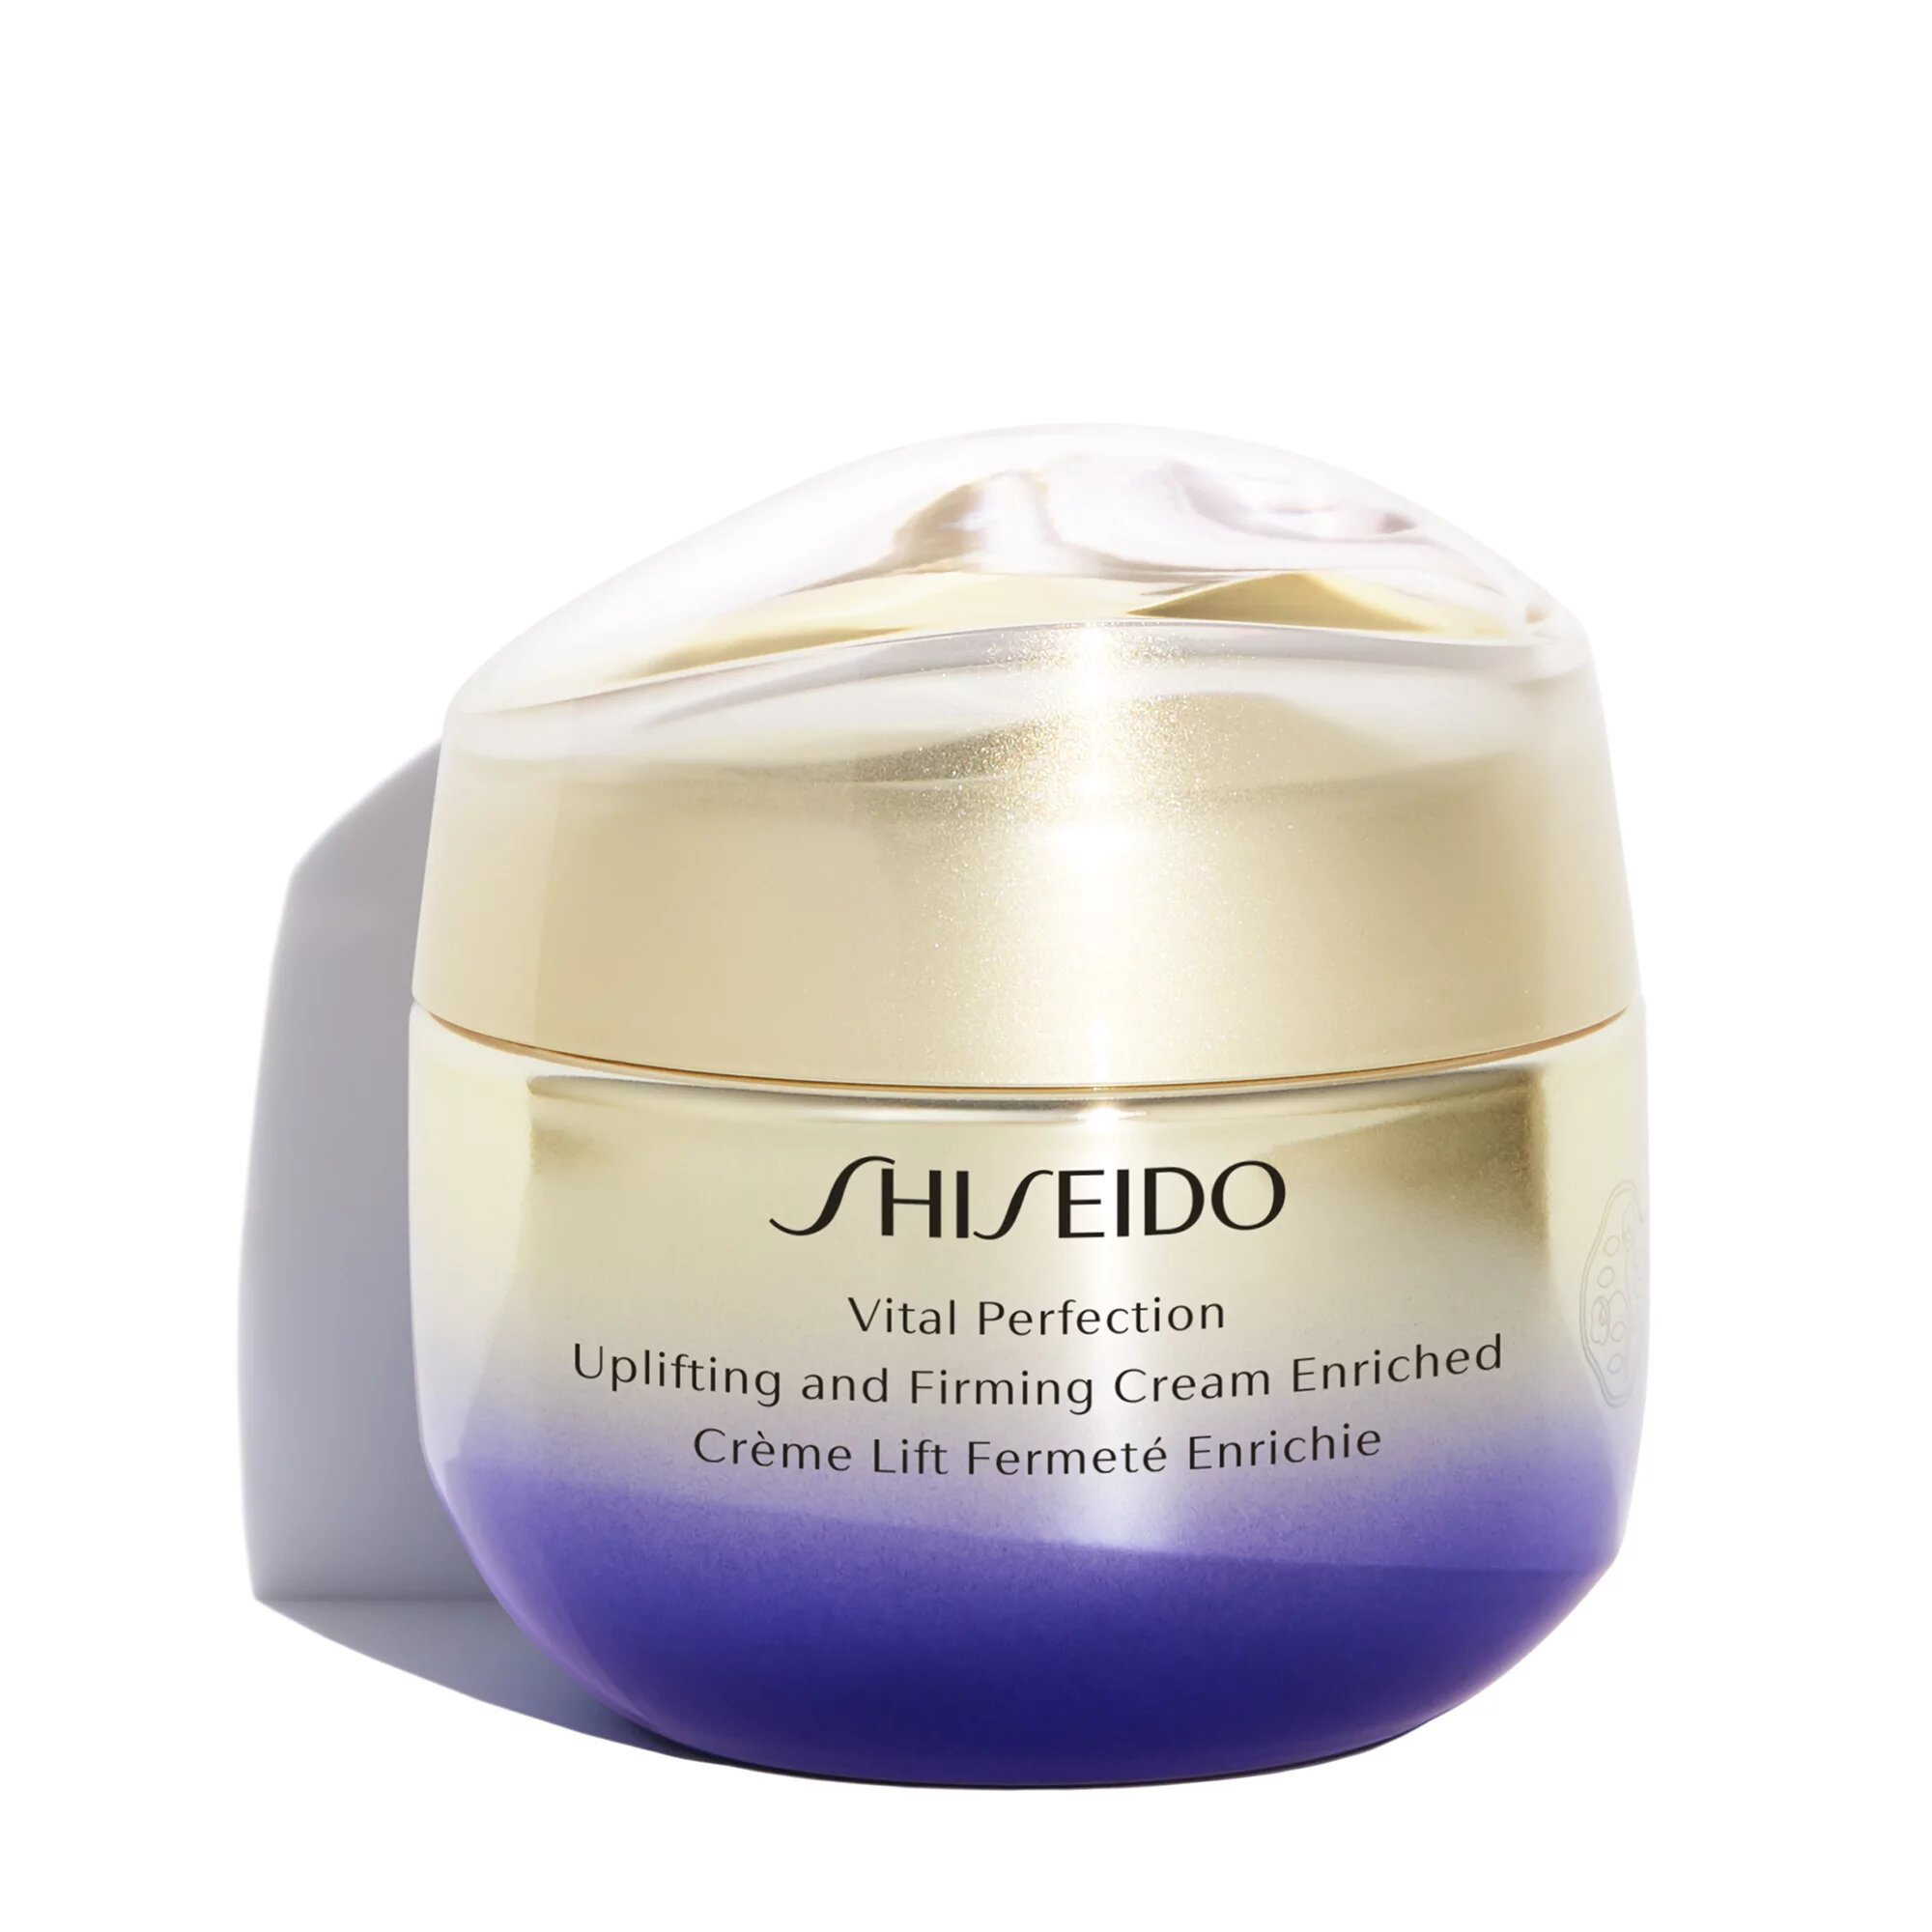 Crema antiarrugas Vital Perfection Uplifting And Firming Cream Enriched Shiseido